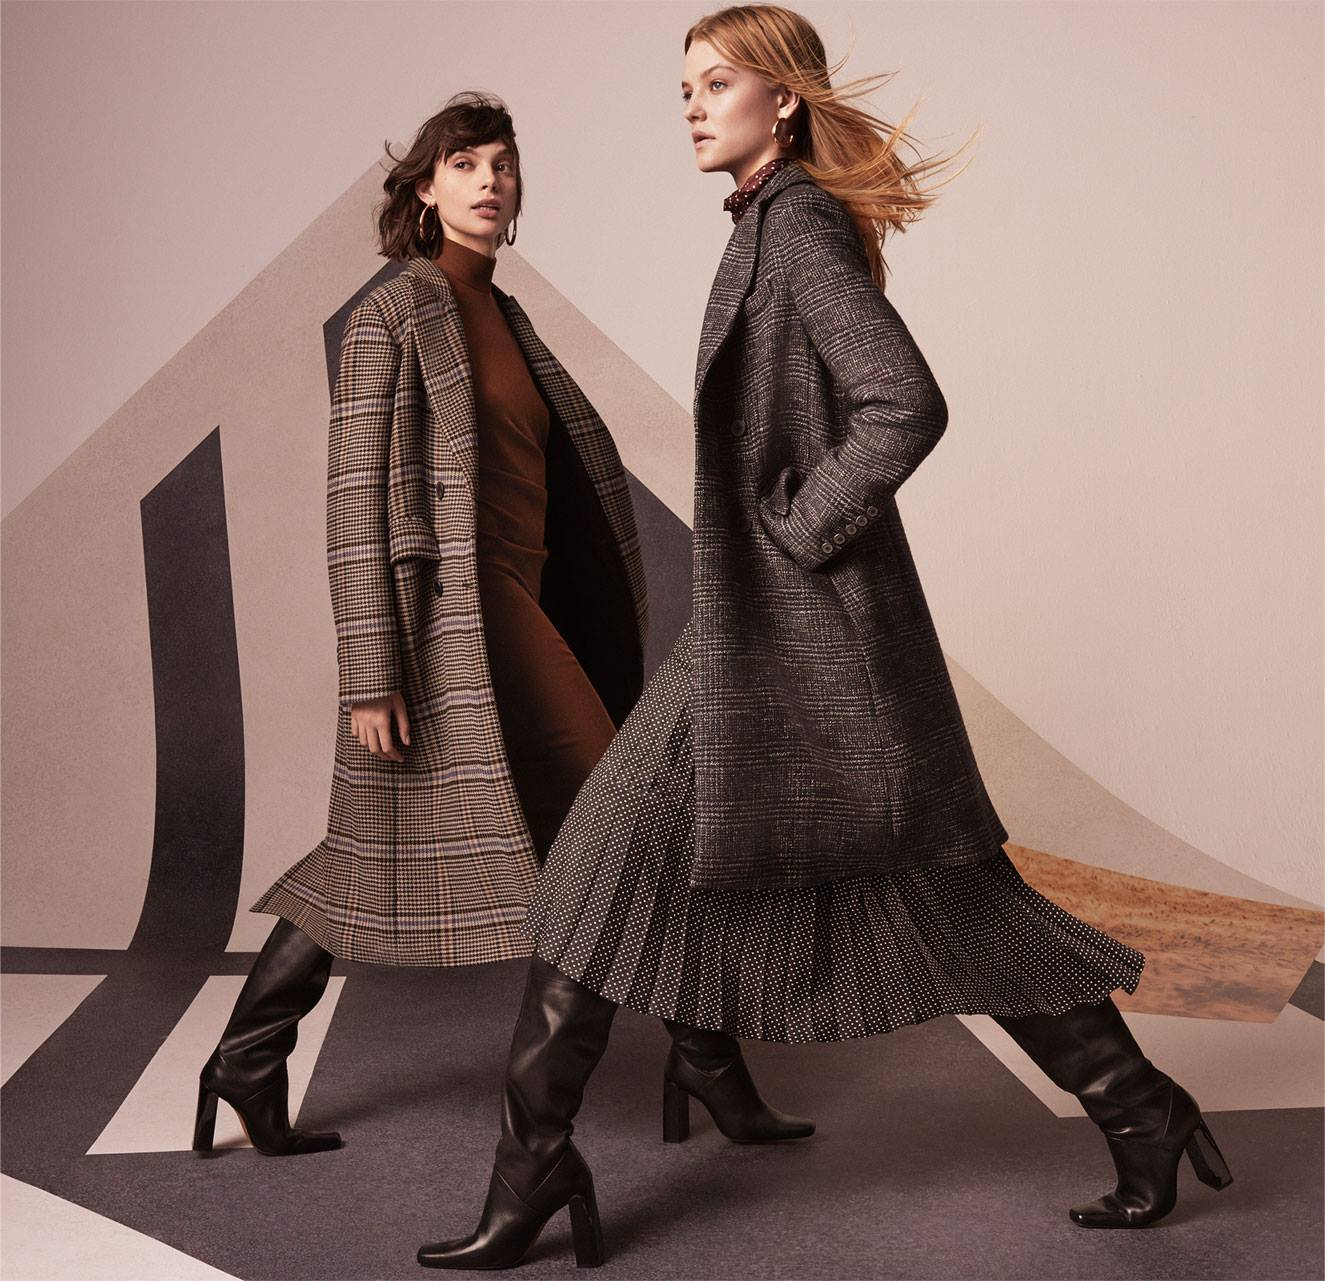 Zara Outerwear Fall/Winter 2017 Campaign